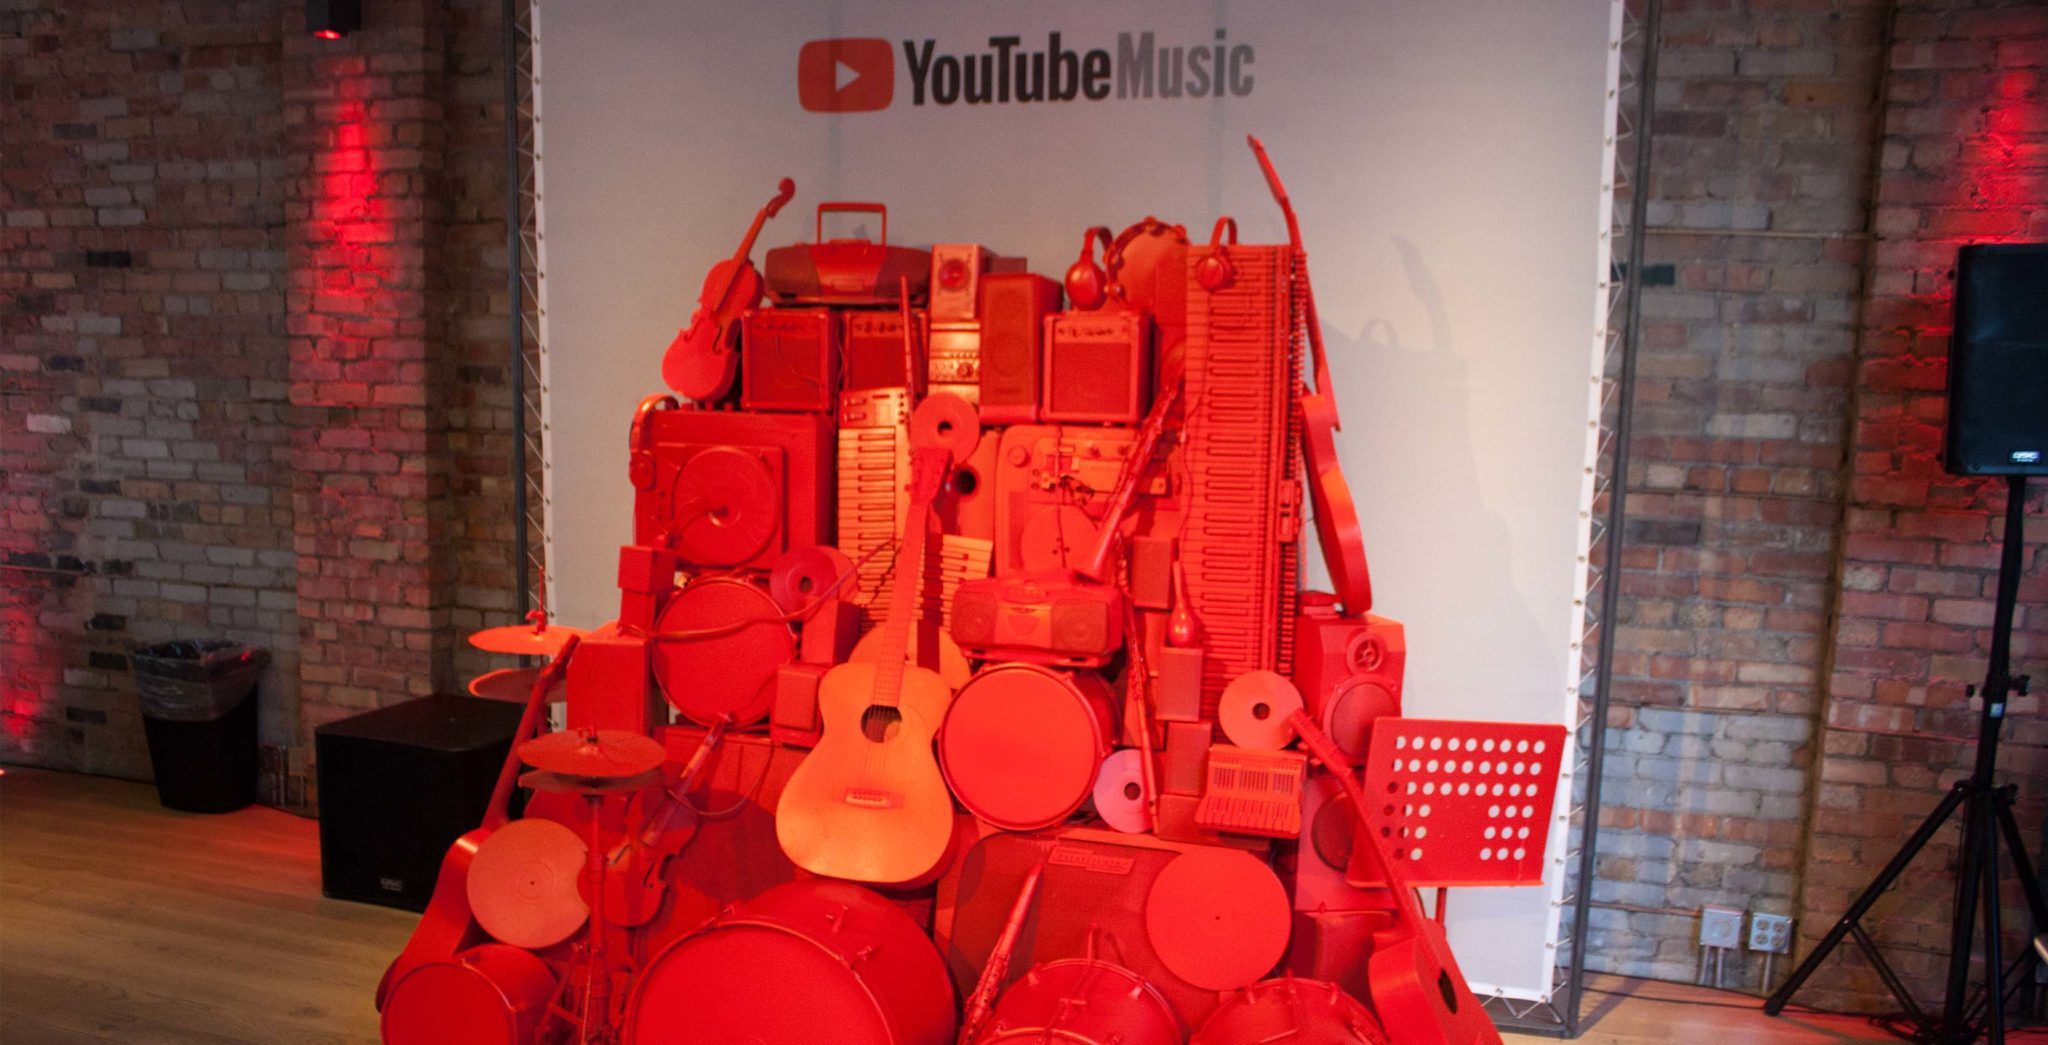 Google Launches YouTube Music and YouTube Premium in Canada